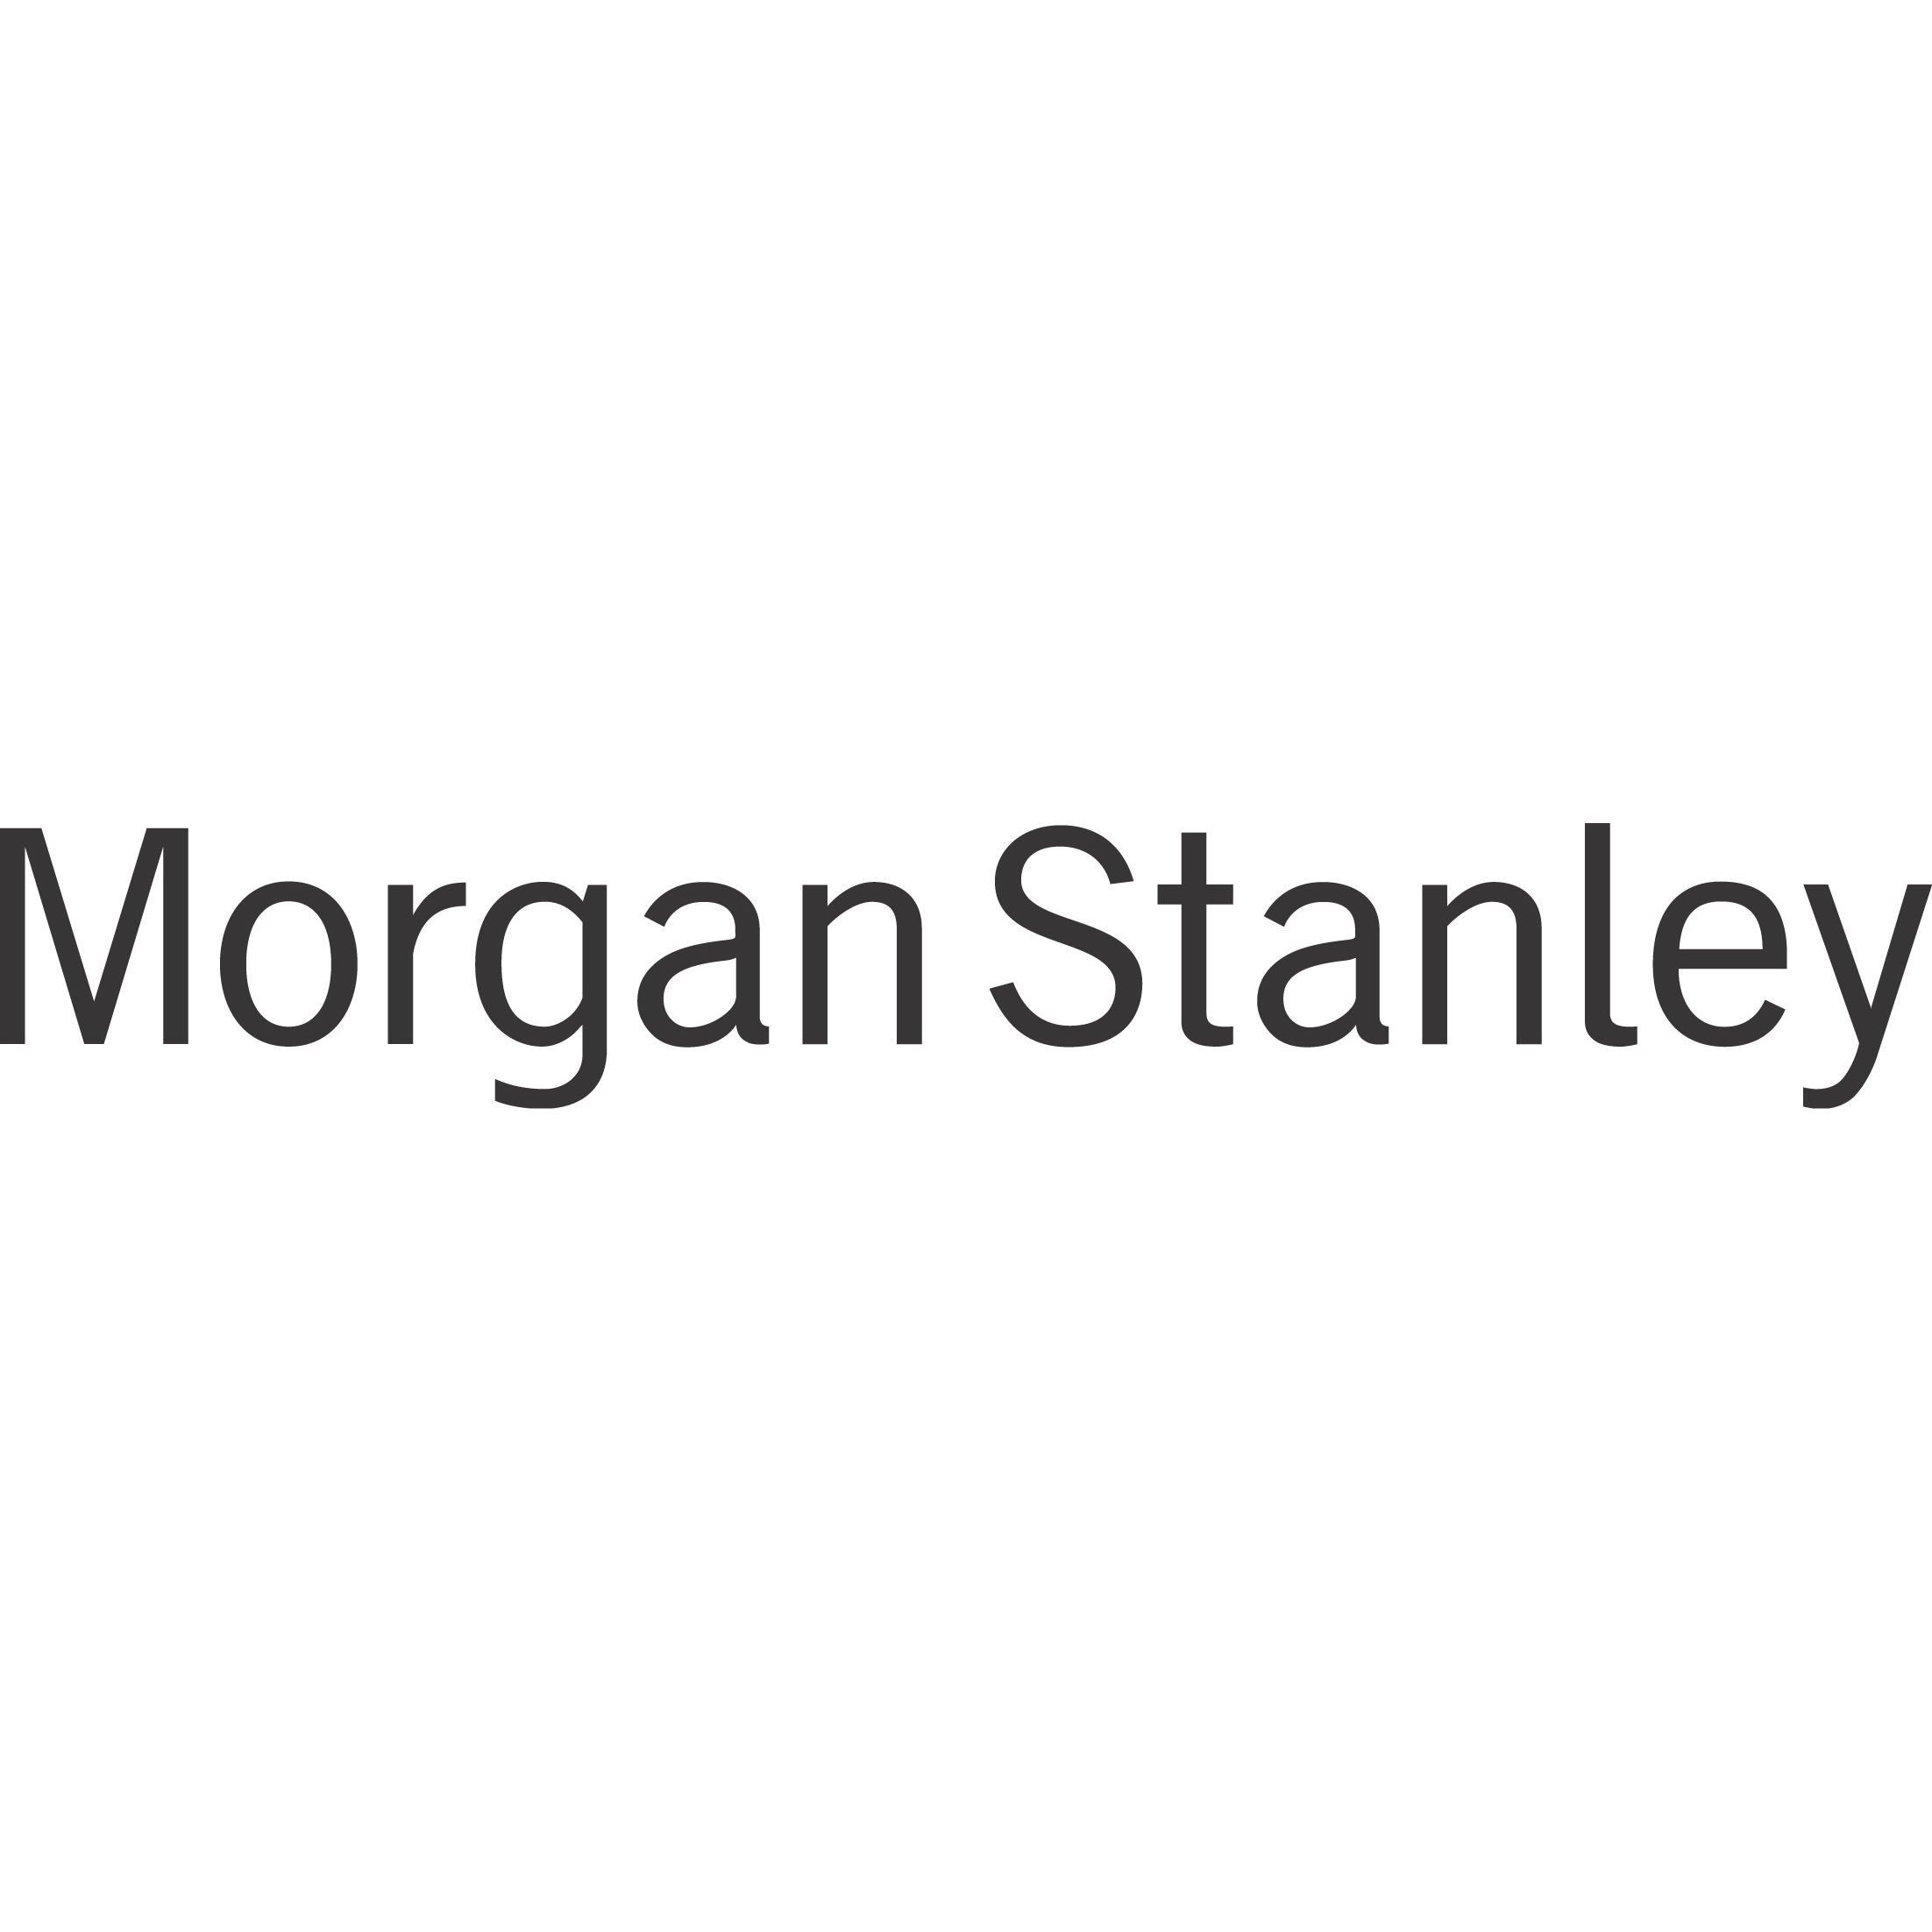 Caterina Holt - Morgan Stanley | Financial Advisor in Grand Rapids,Michigan